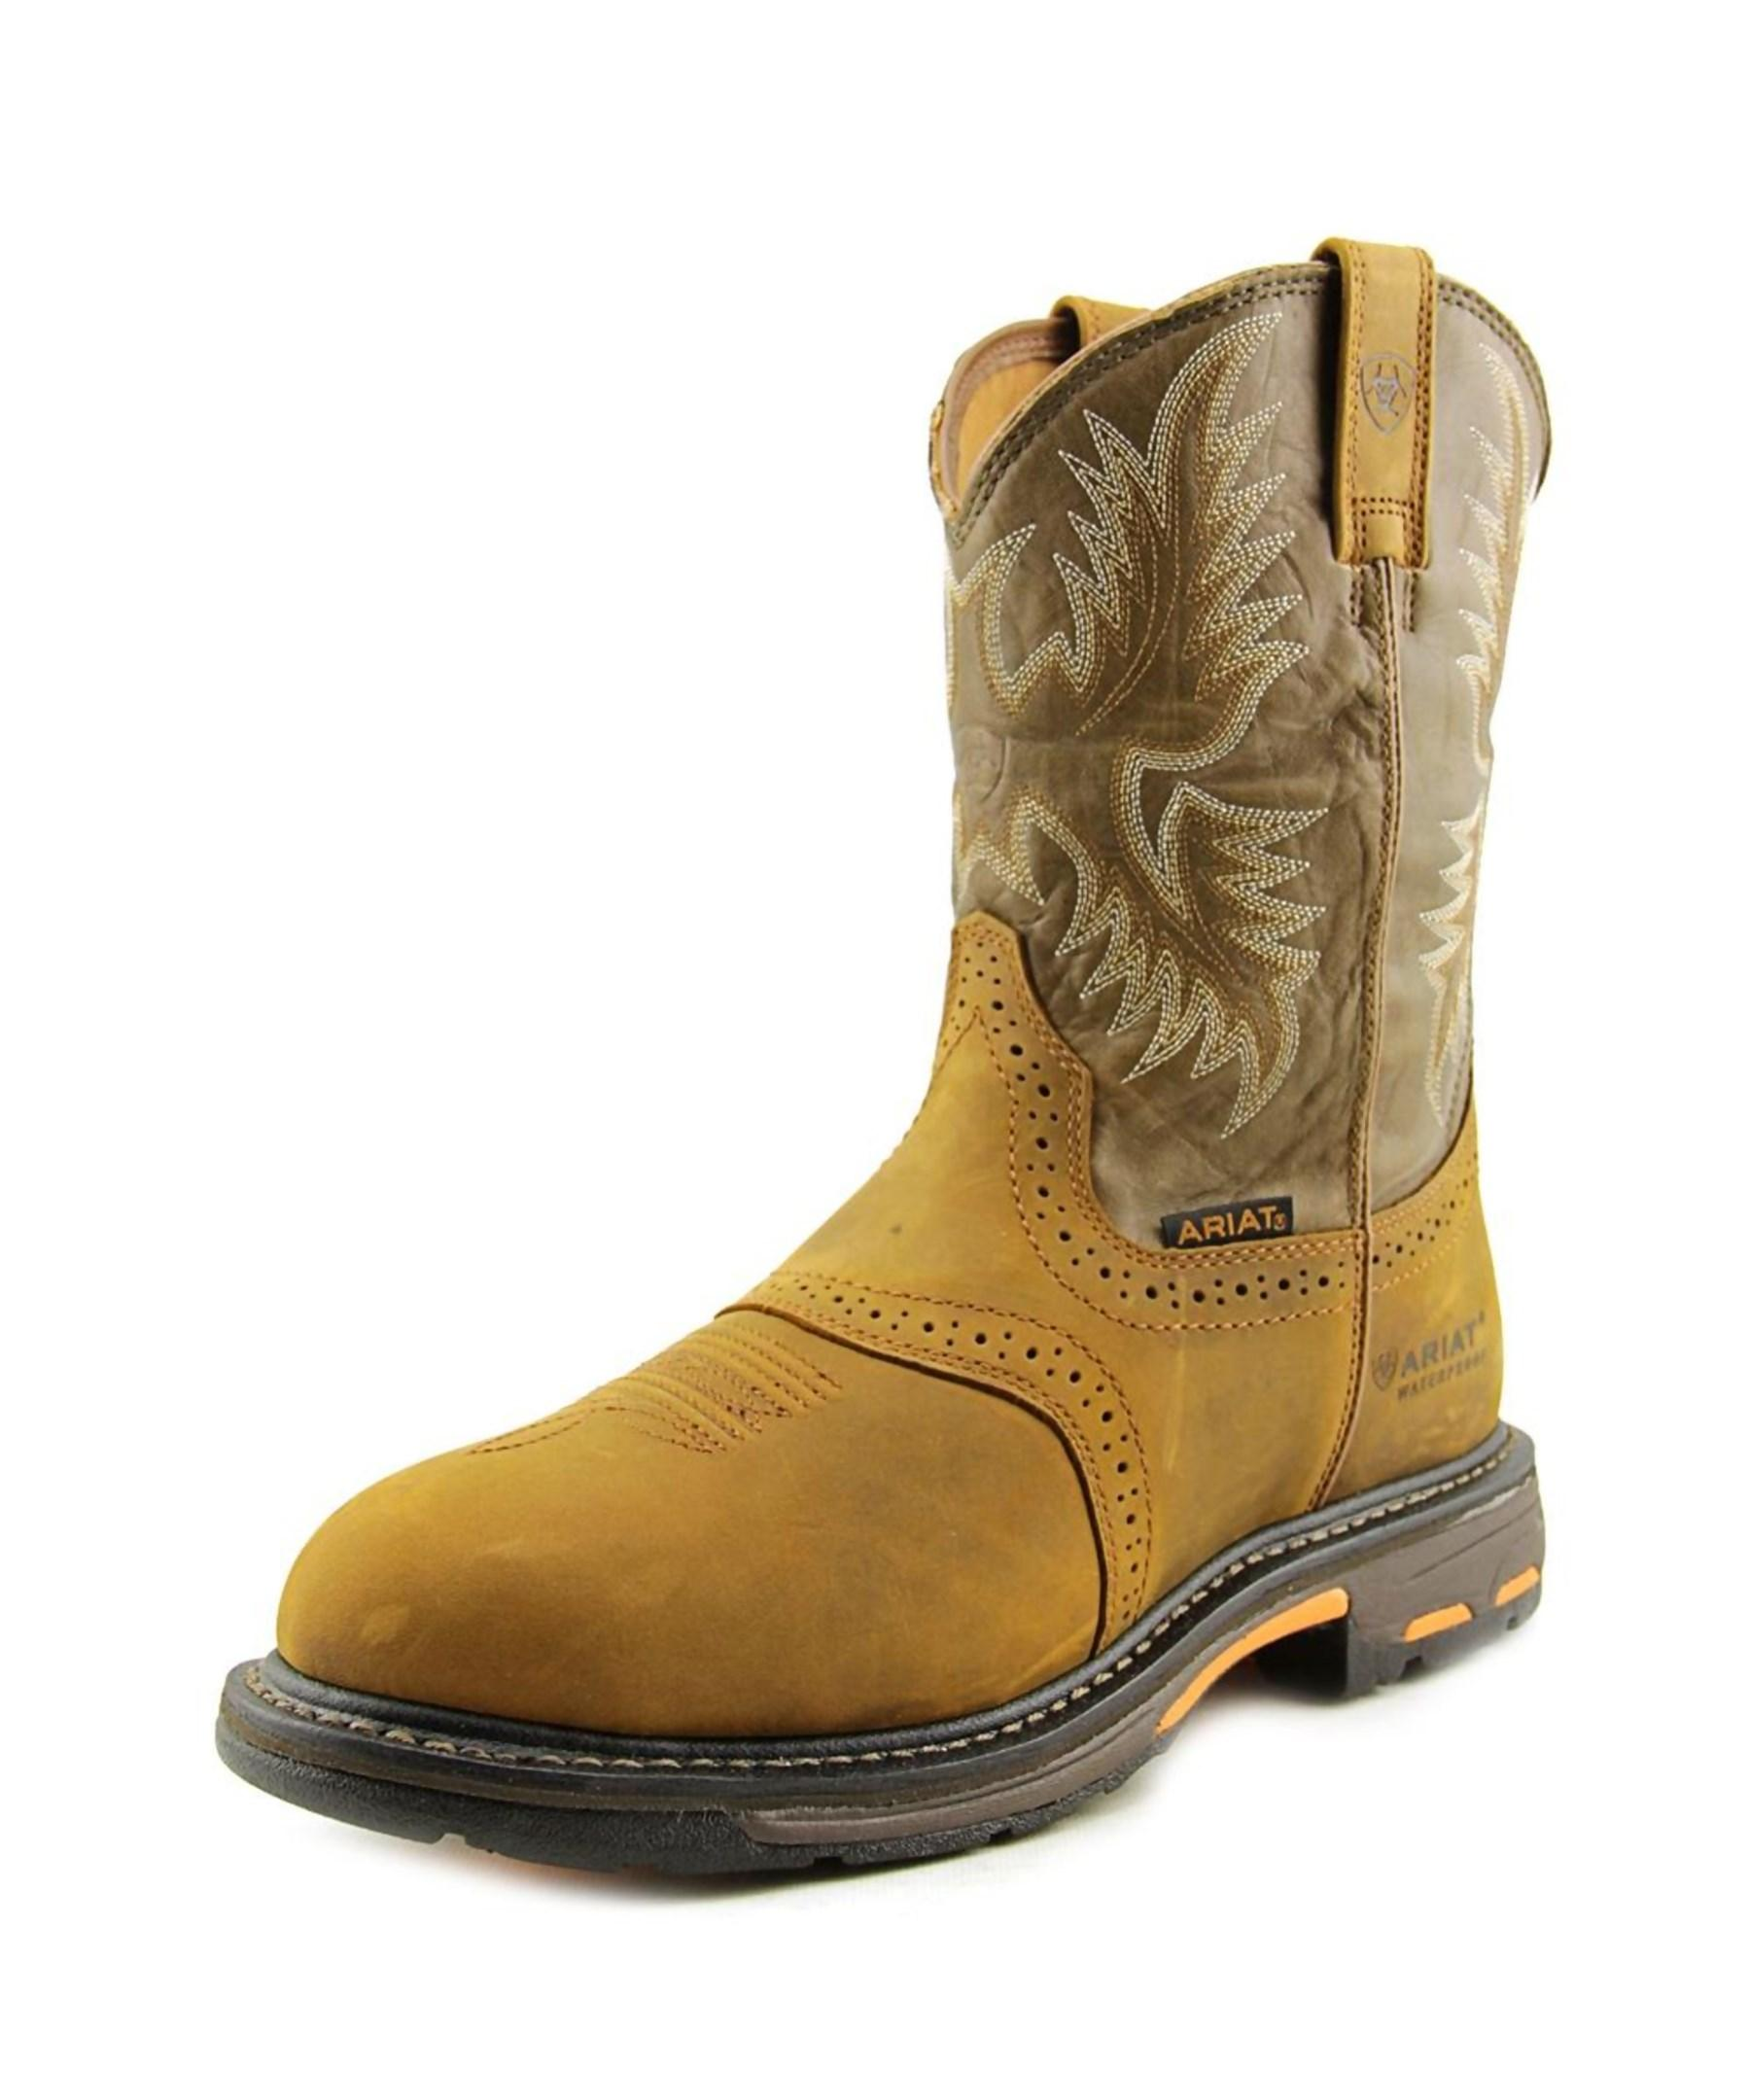 36ee48fc2dd Lyst - Ariat Workhog Round Toe Leather Hunting Boot in Brown for Men